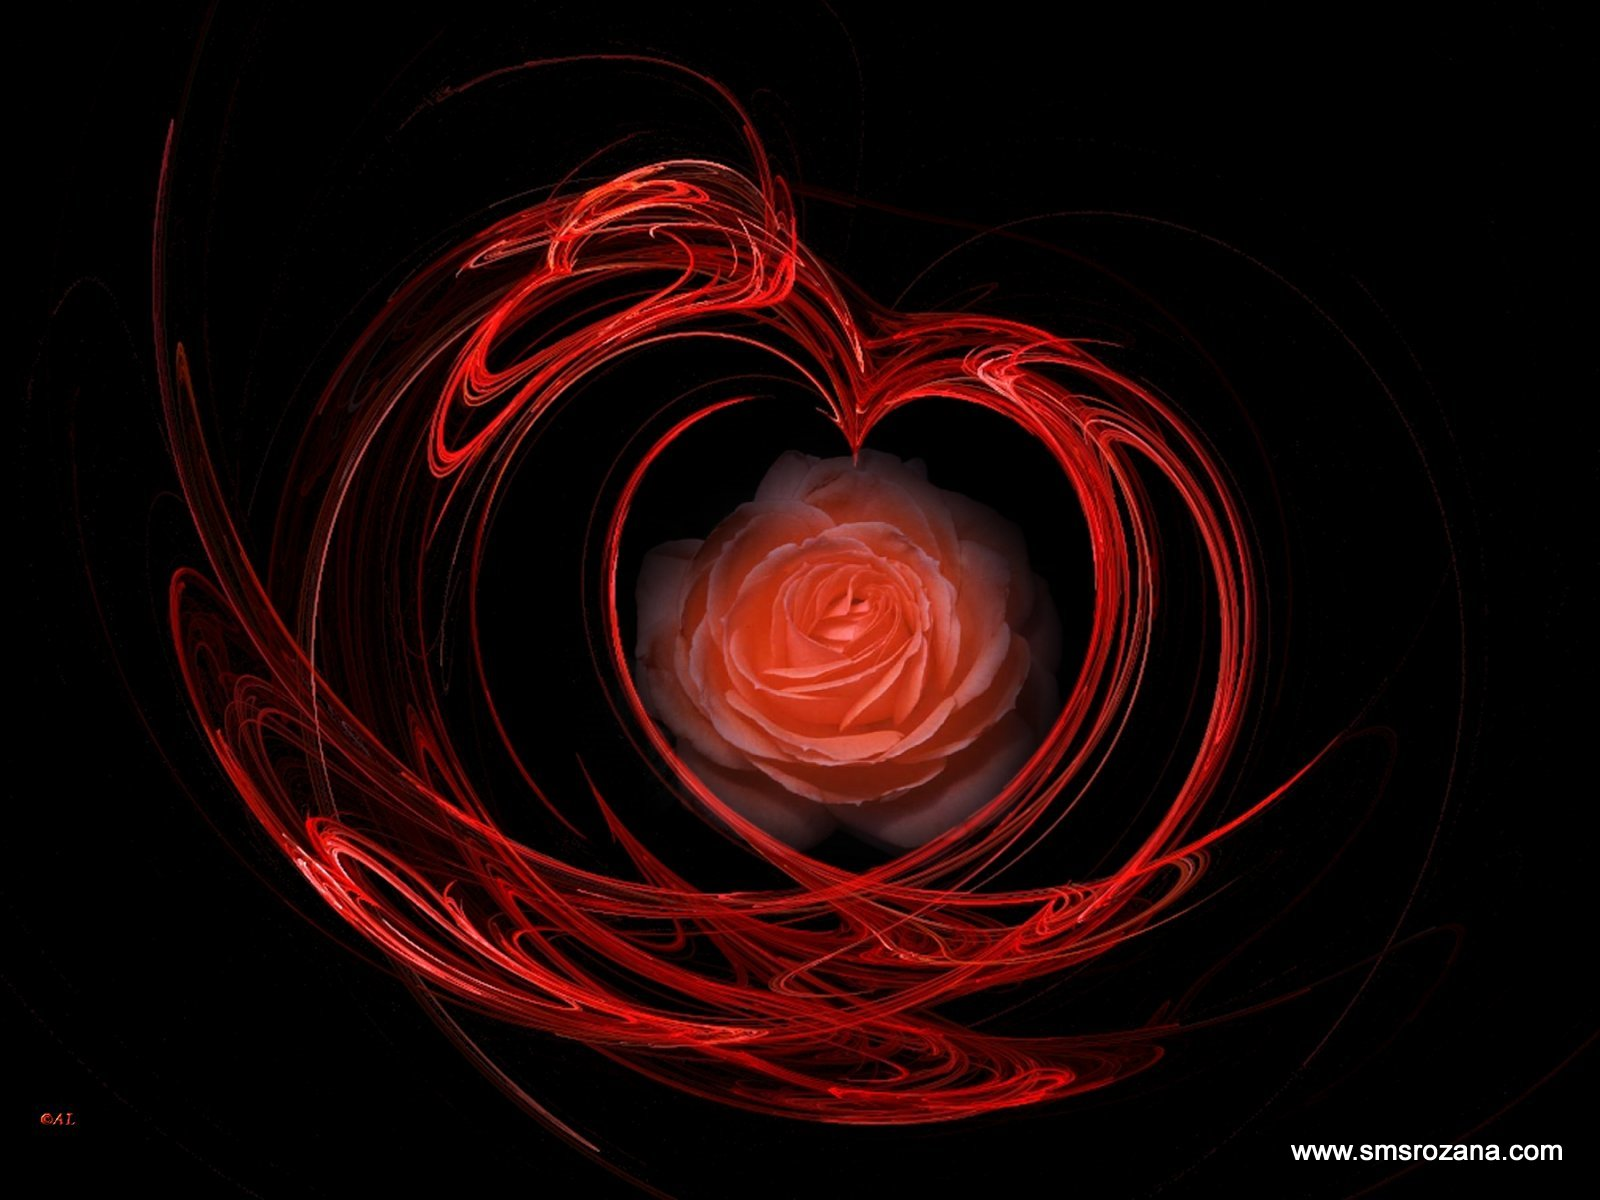 http://2.bp.blogspot.com/-PrQYM_-44w0/TVg-LL726nI/AAAAAAAAApQ/BD5NkIBluYg/s1600/Happy-Valentine-day-wallpapers-91.jpg